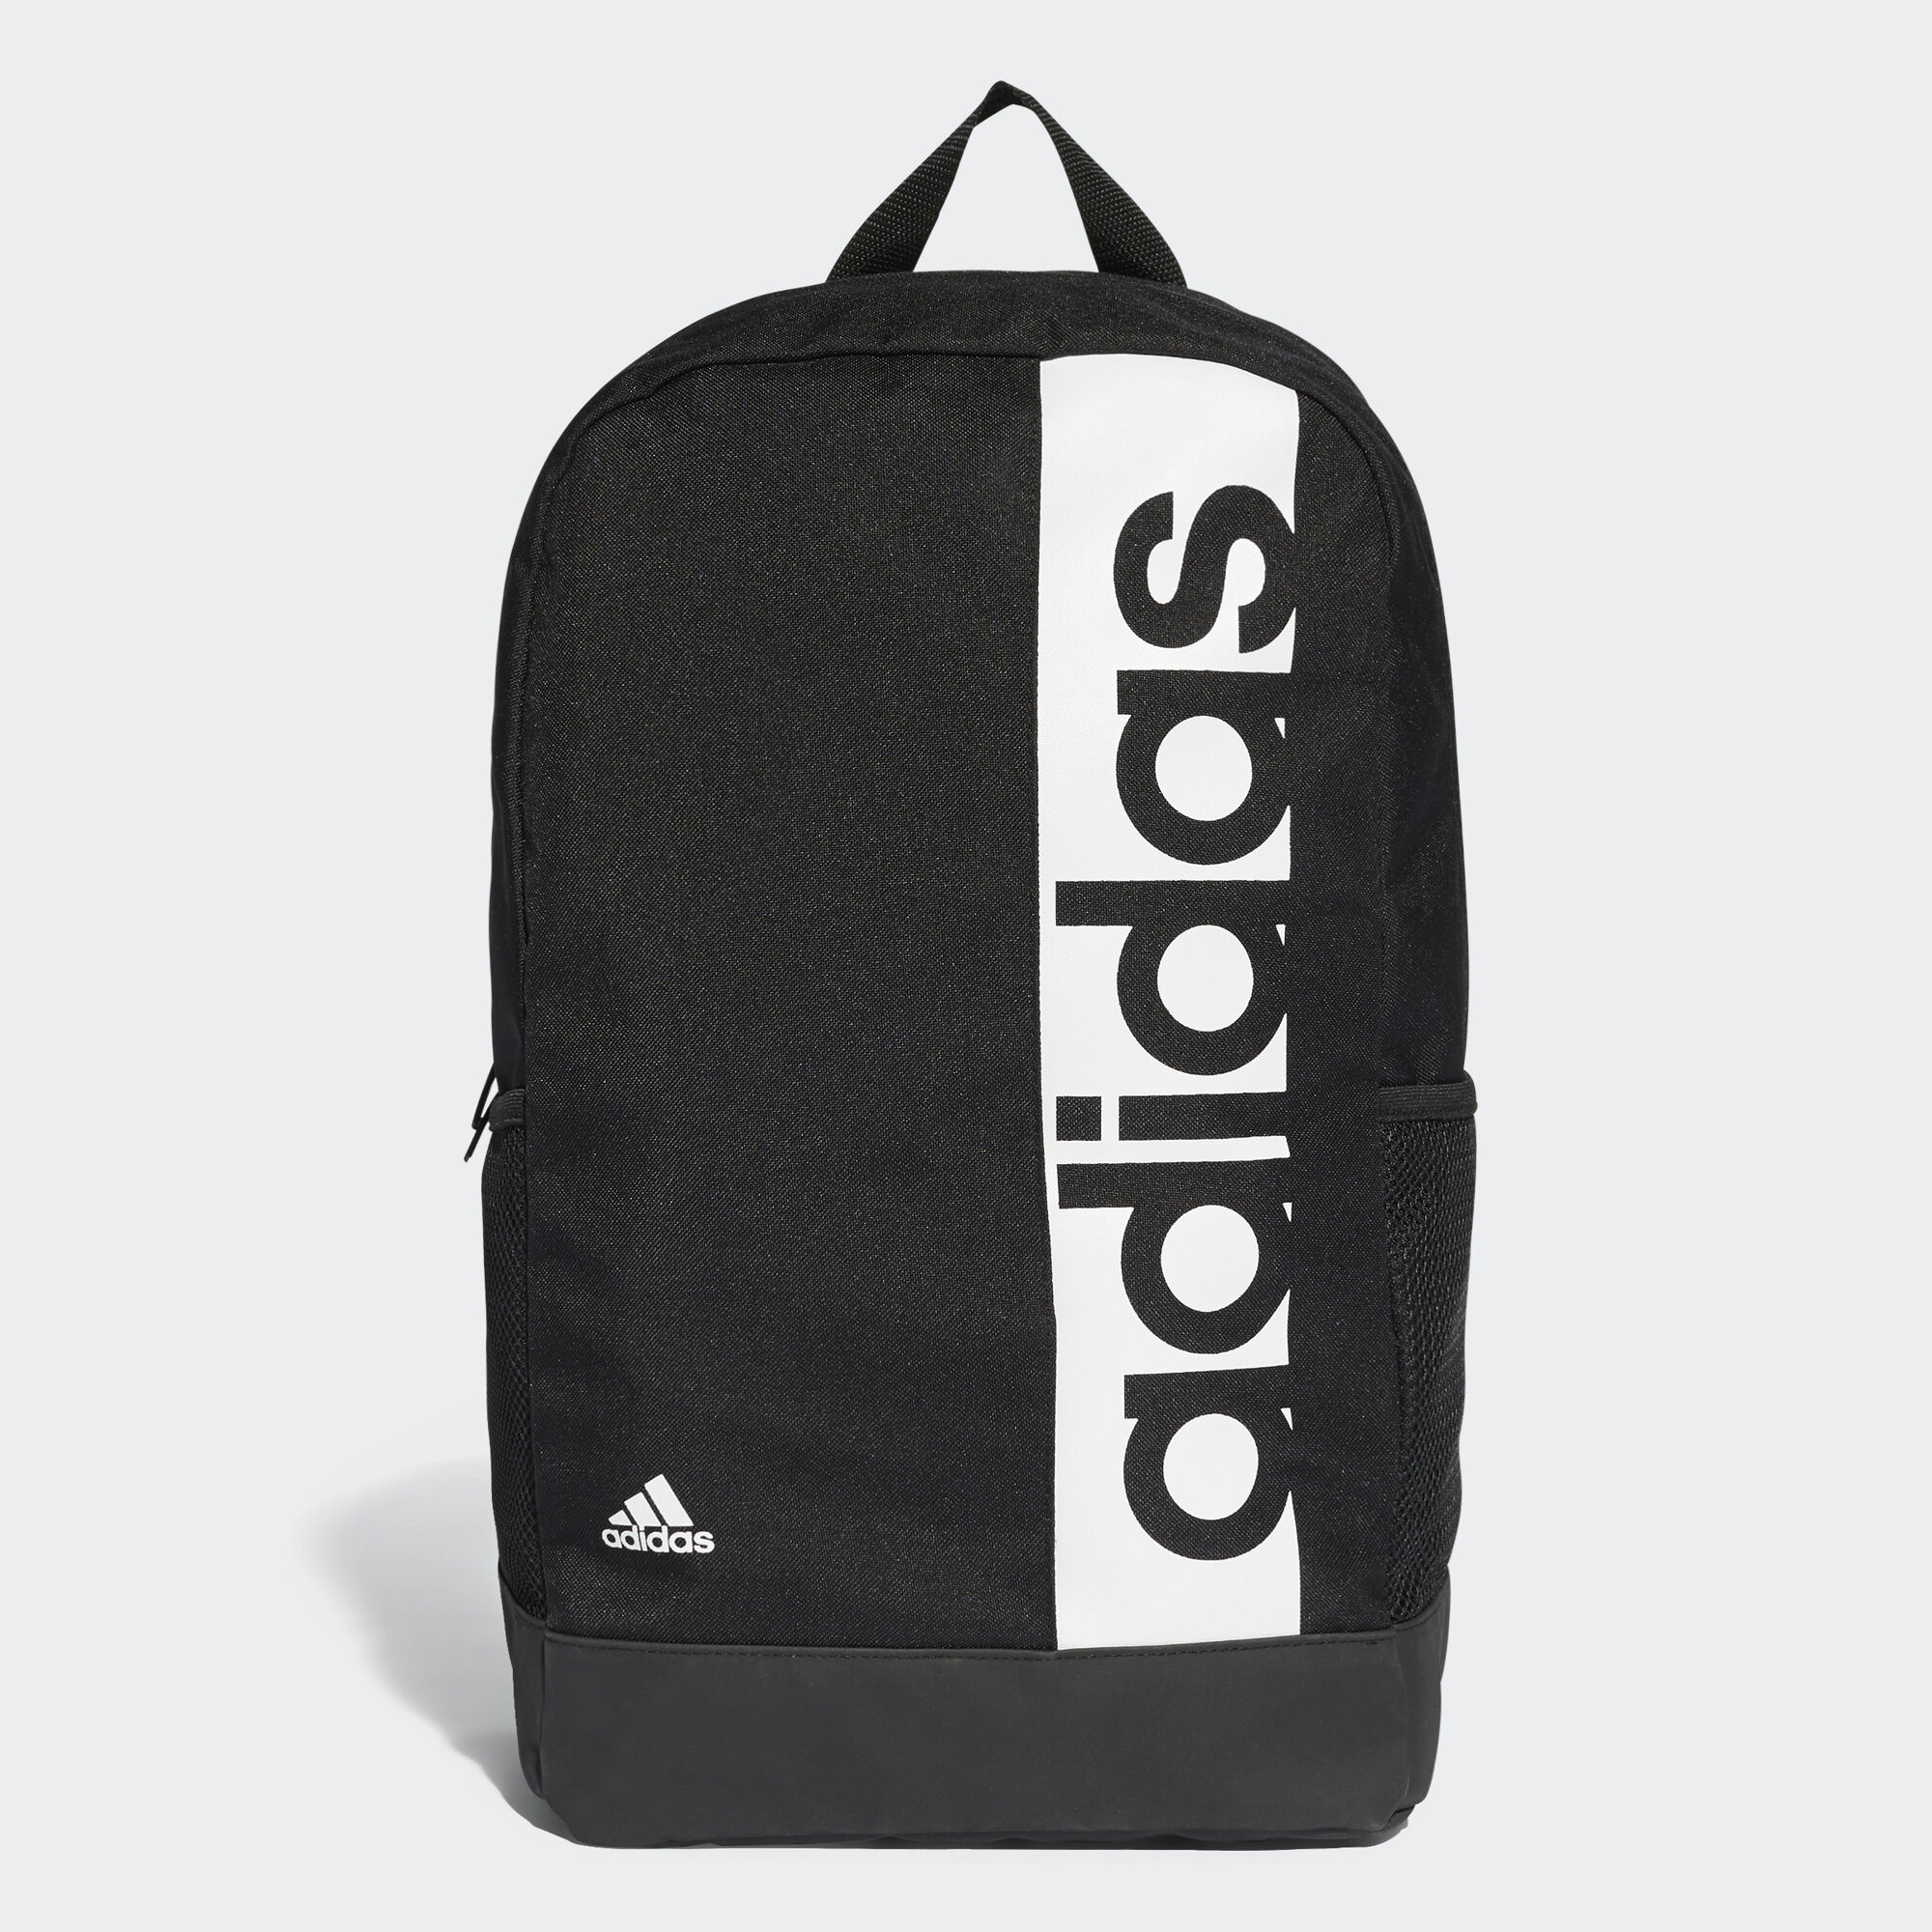 Buy adidas black and white backpack   OFF74% Discounted fcc49a264b